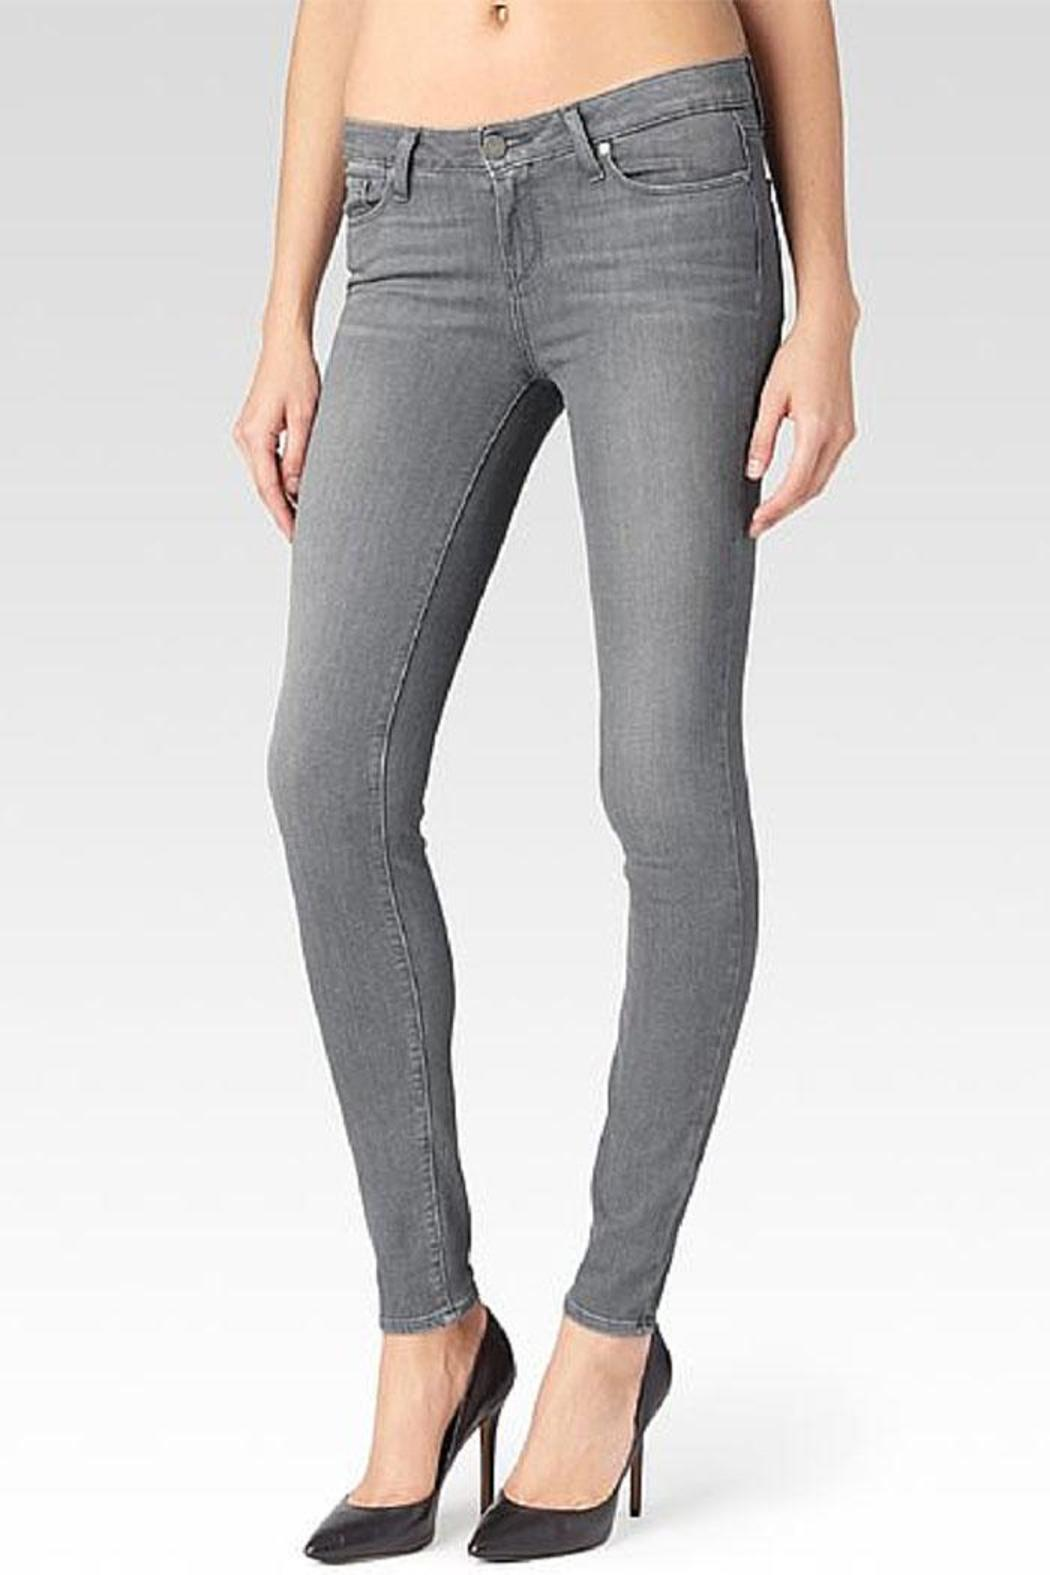 Paige Denim Verdugo Silver Skinnies - Front Cropped Image